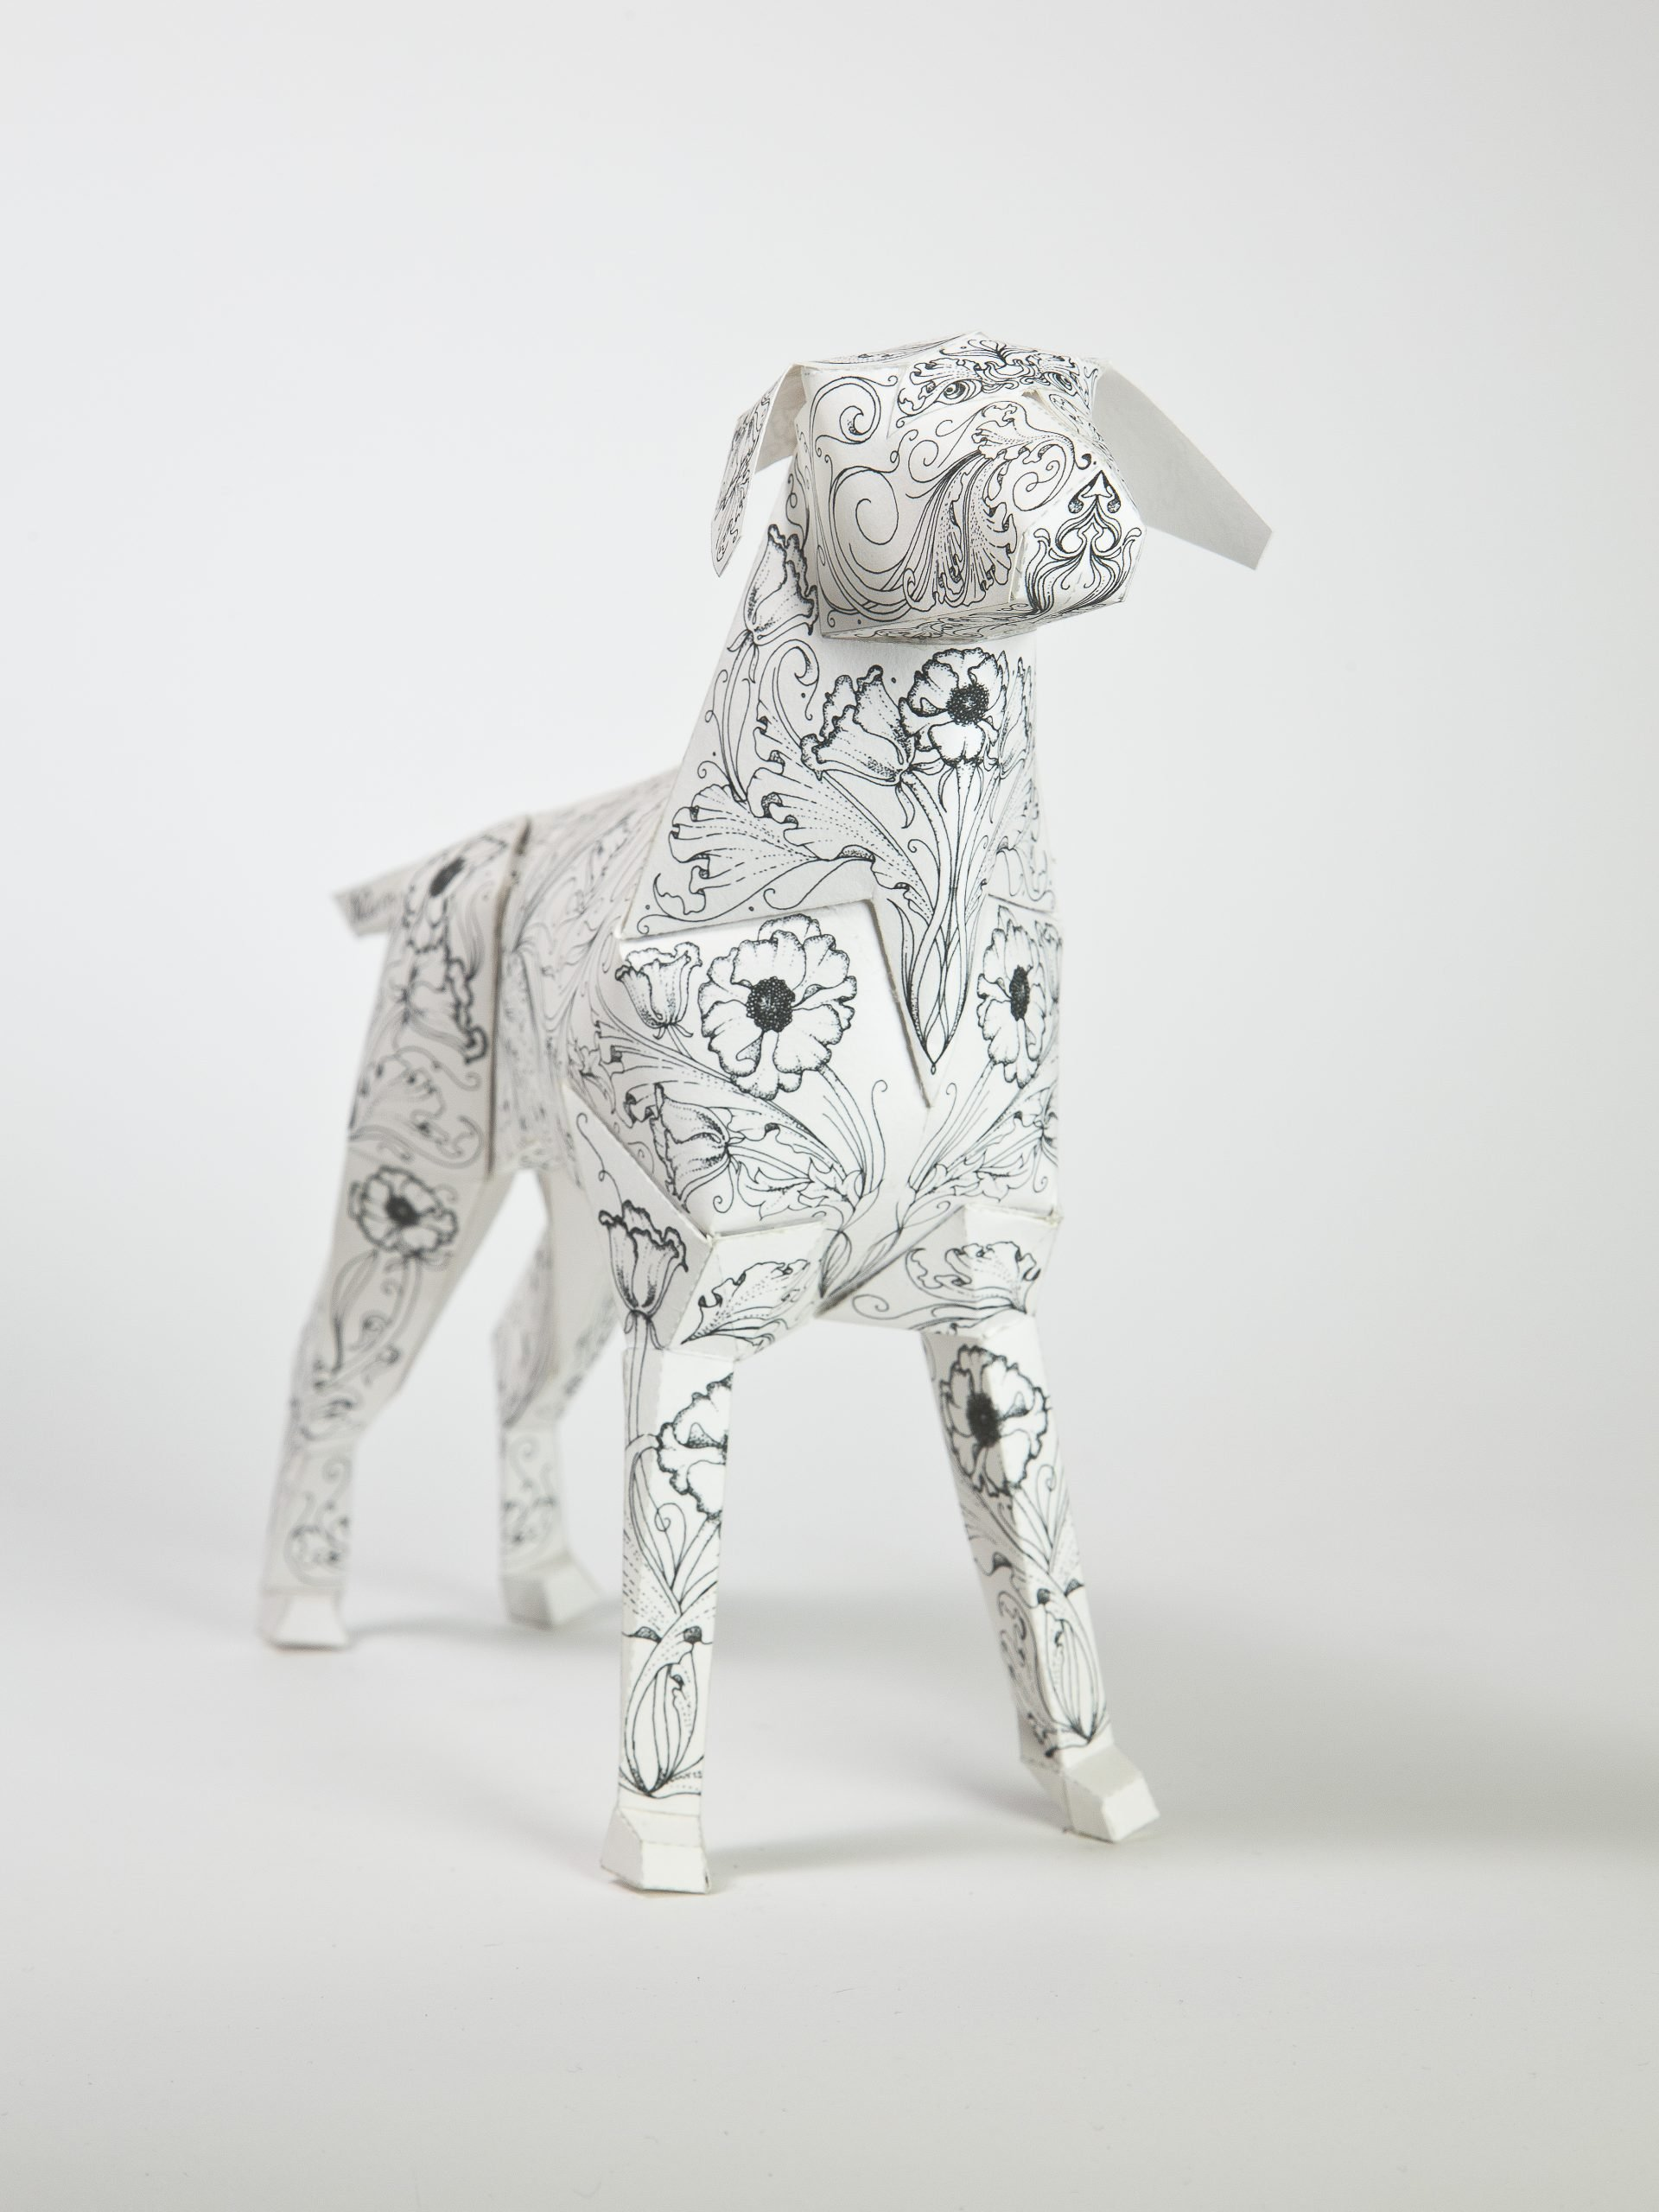 Main view of a dog sculpture made from paper. It has a black and white repeat flower pattern all over it.